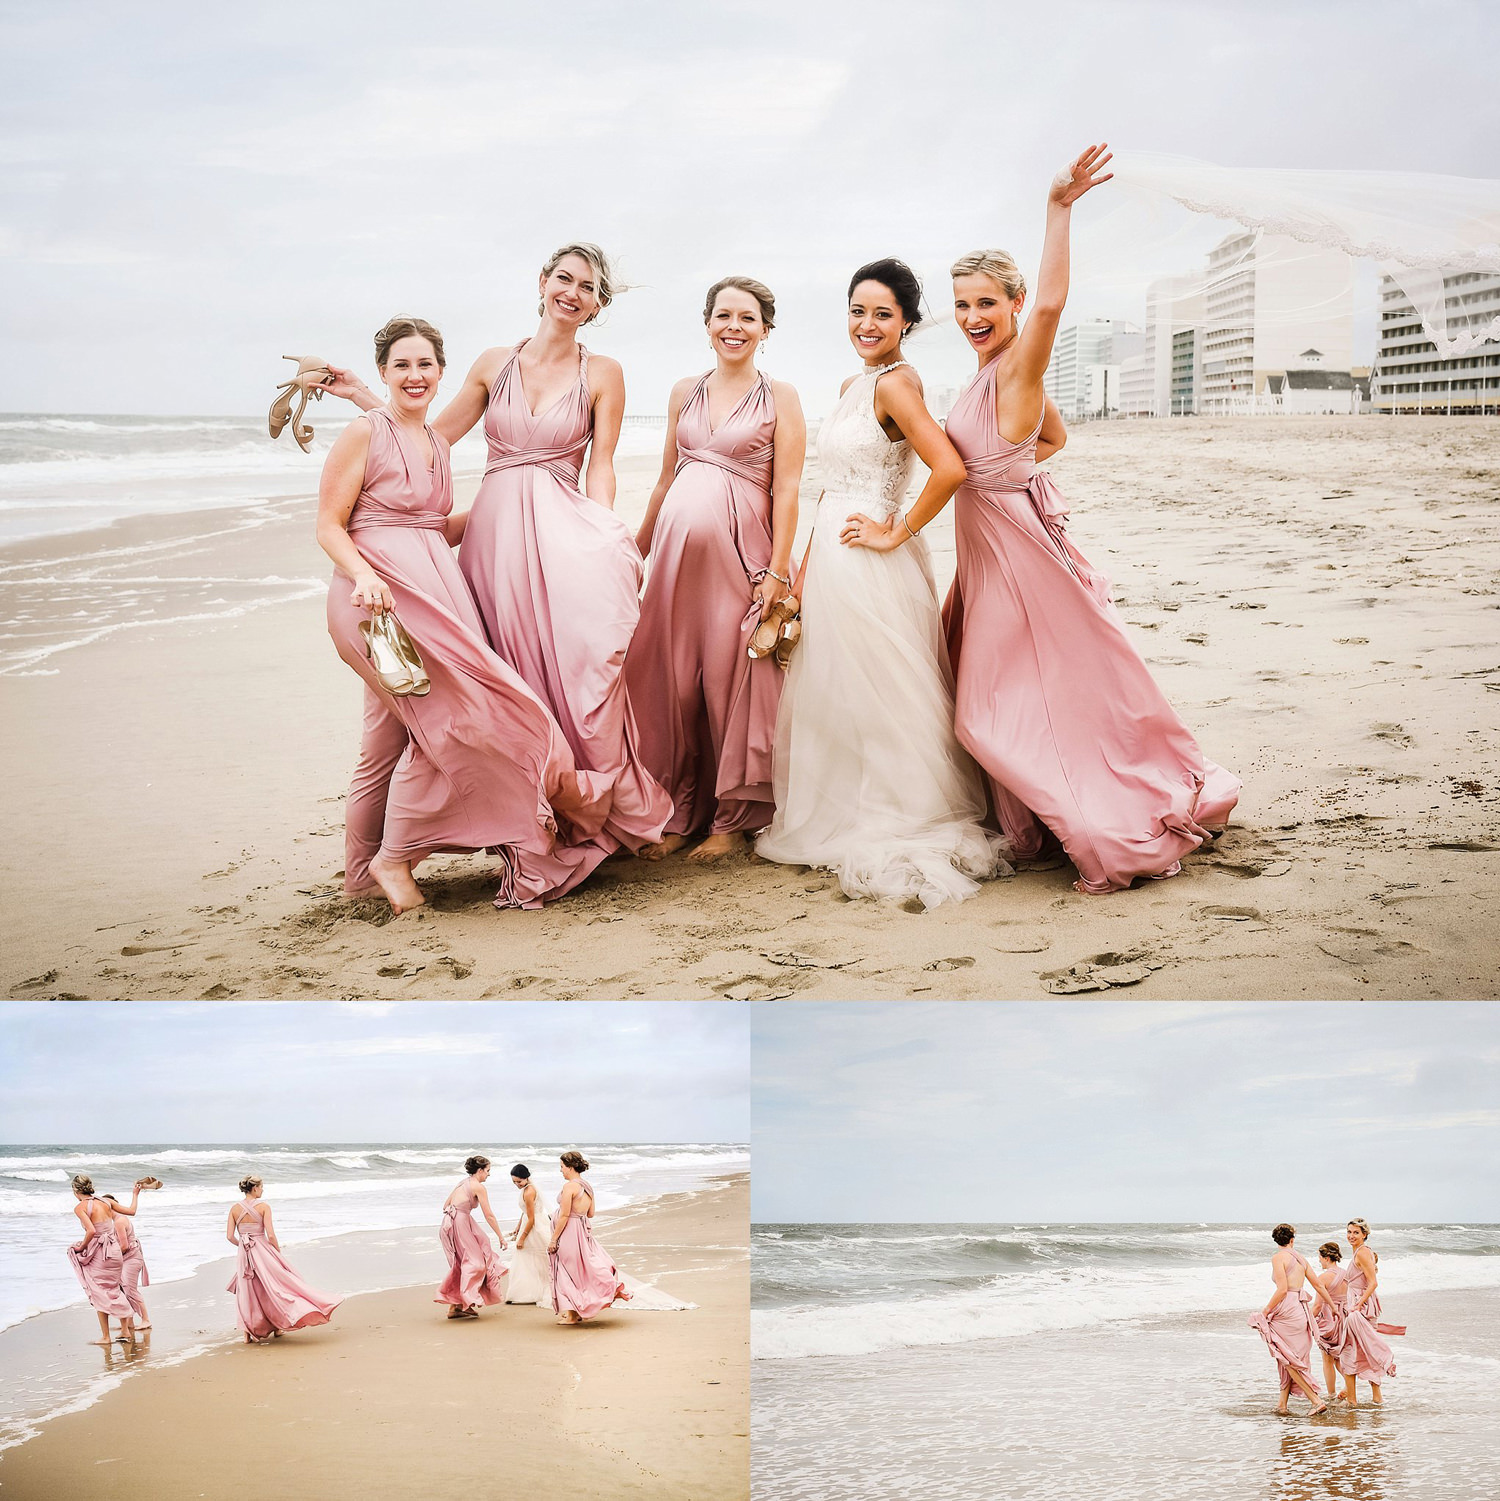 2-VA-wedding-photographer-melissa-bliss-photography-bridesmaidsonbeach.jpg